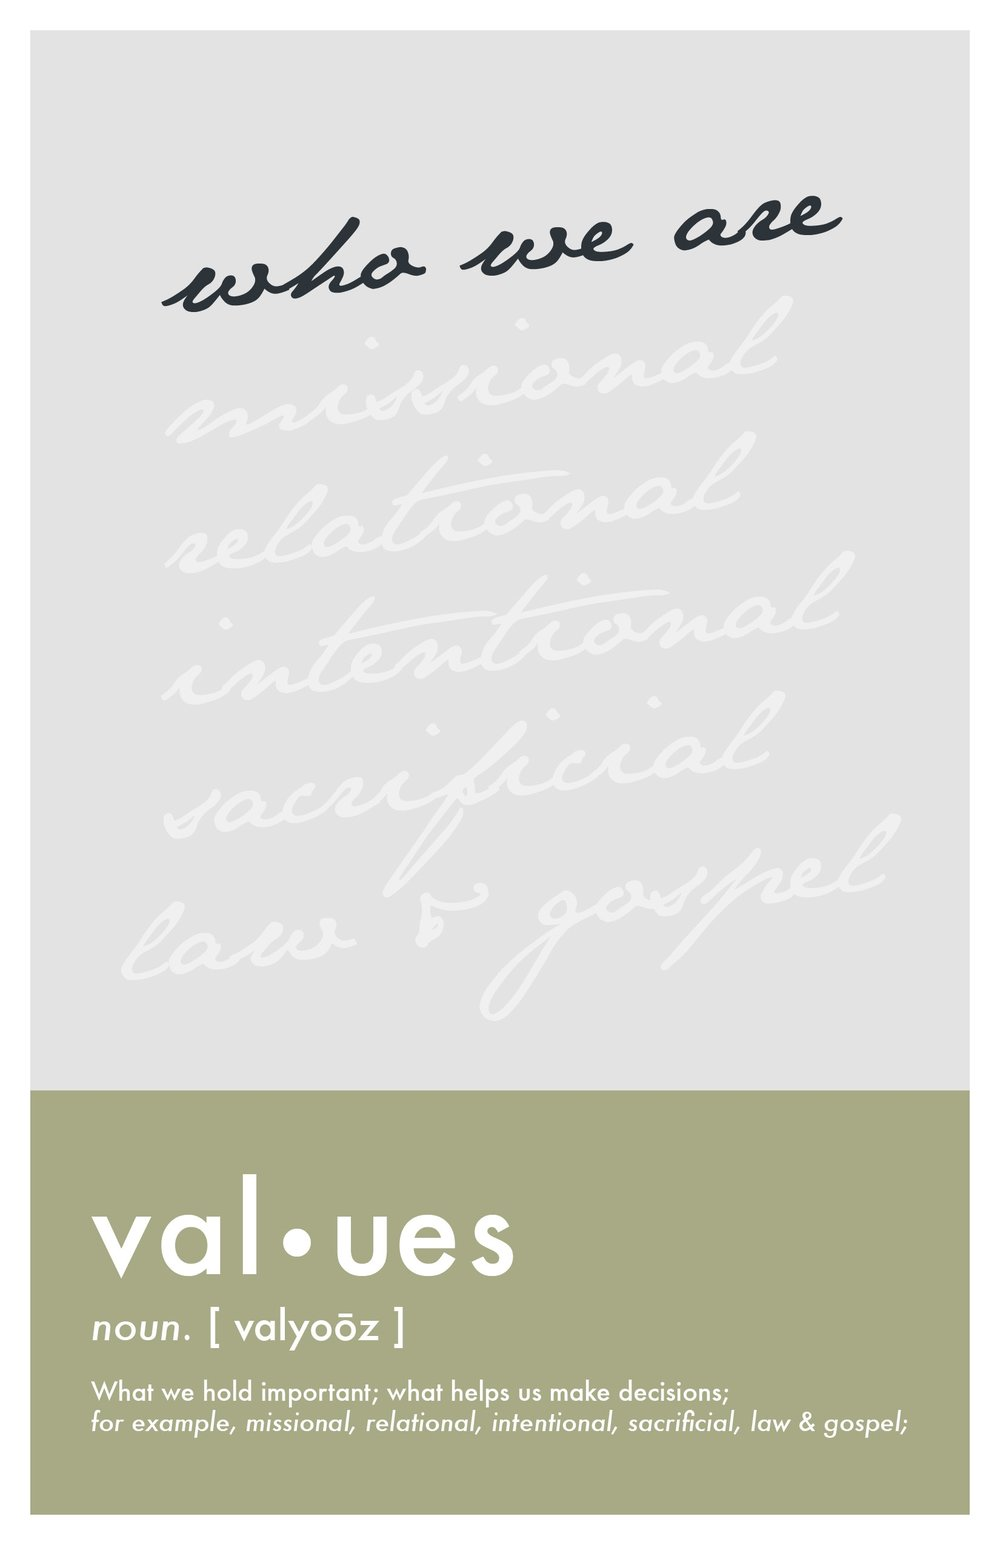 Values-Wk1-Bulletin.jpg